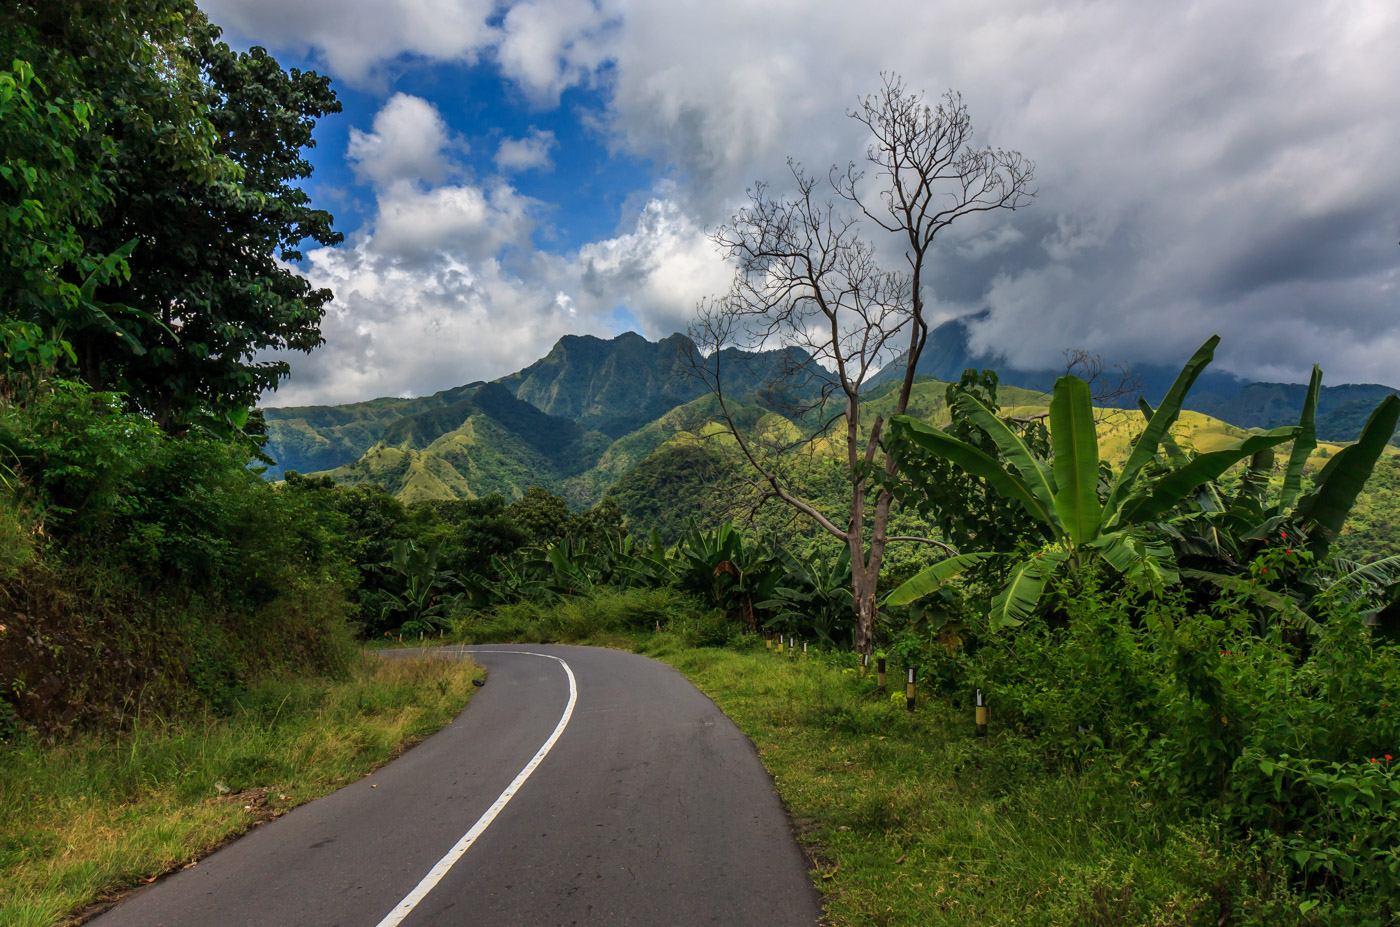 On the Trans-Flores Highway.